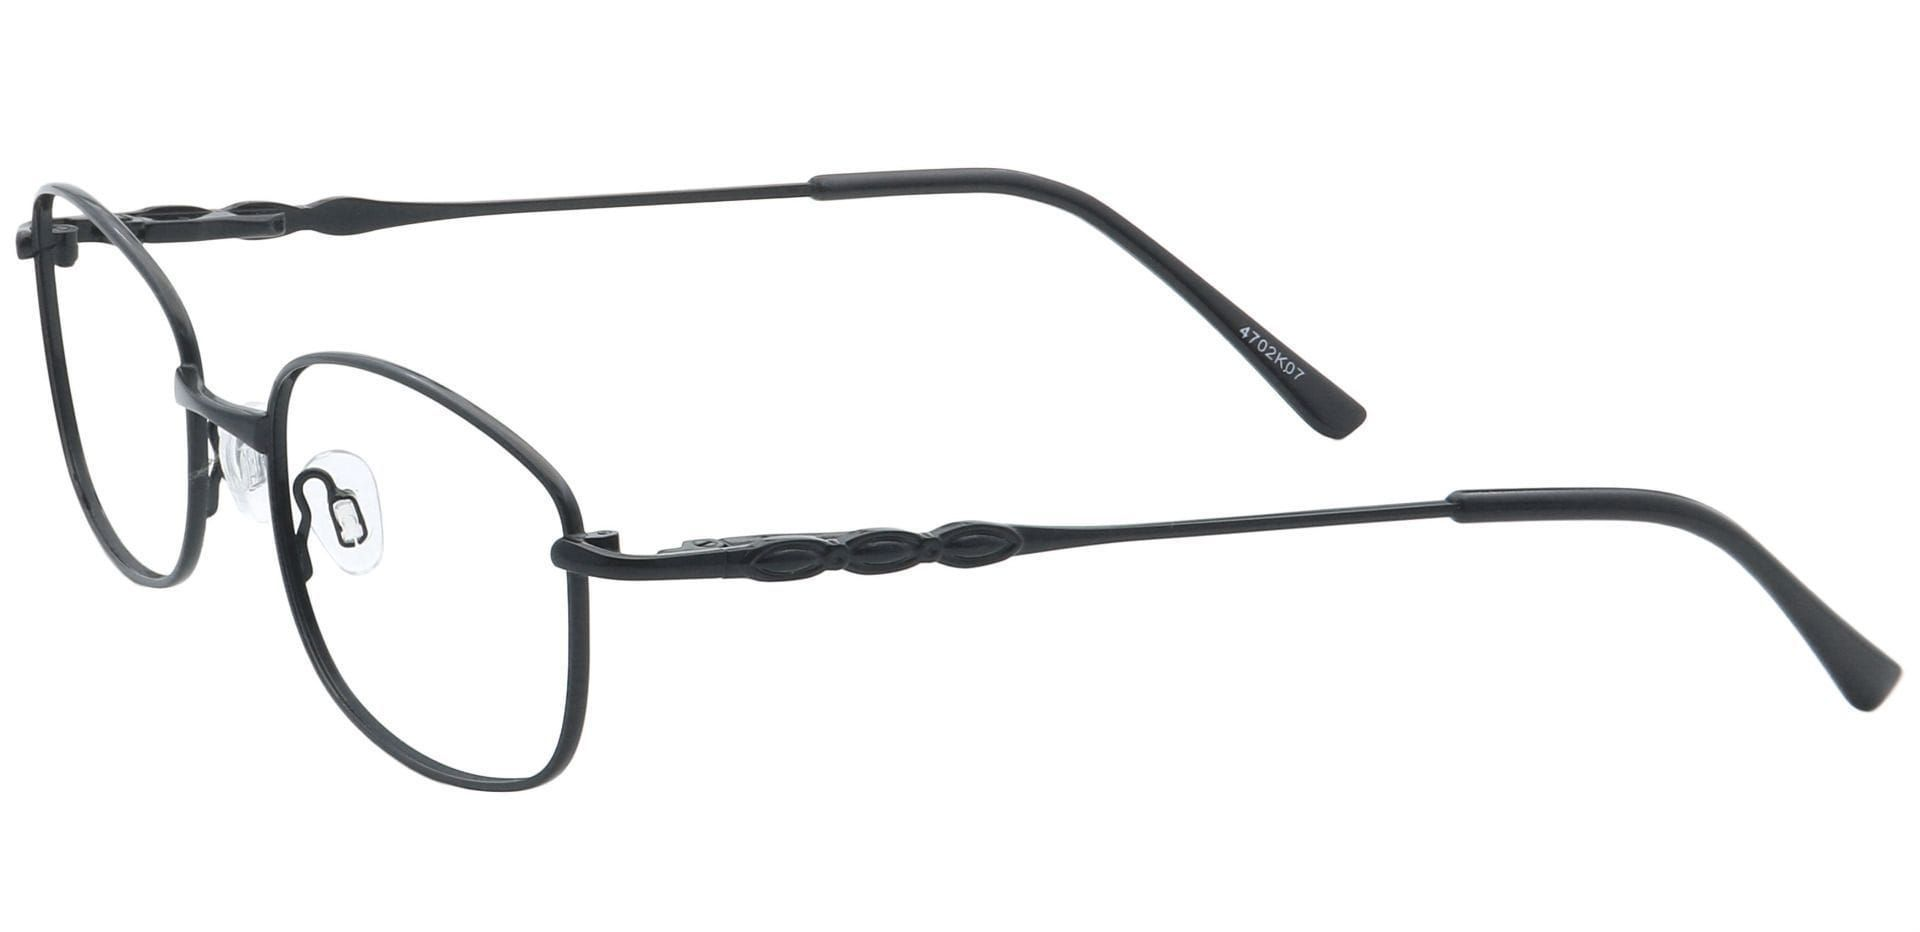 Halley Oval Prescription Glasses - Black